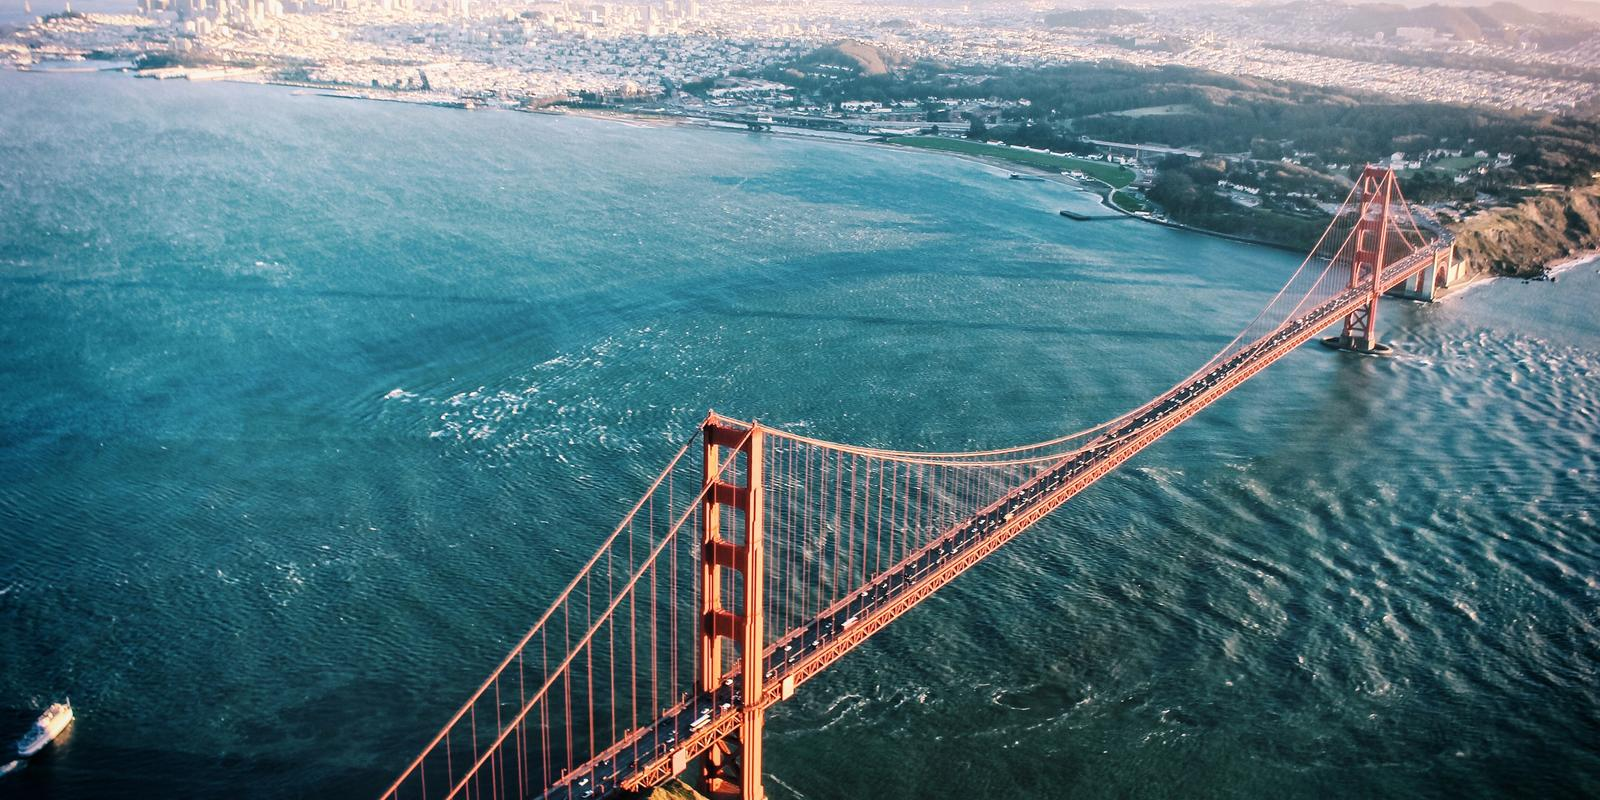 Aerial view of the San Francisco Golden Gate Bridge